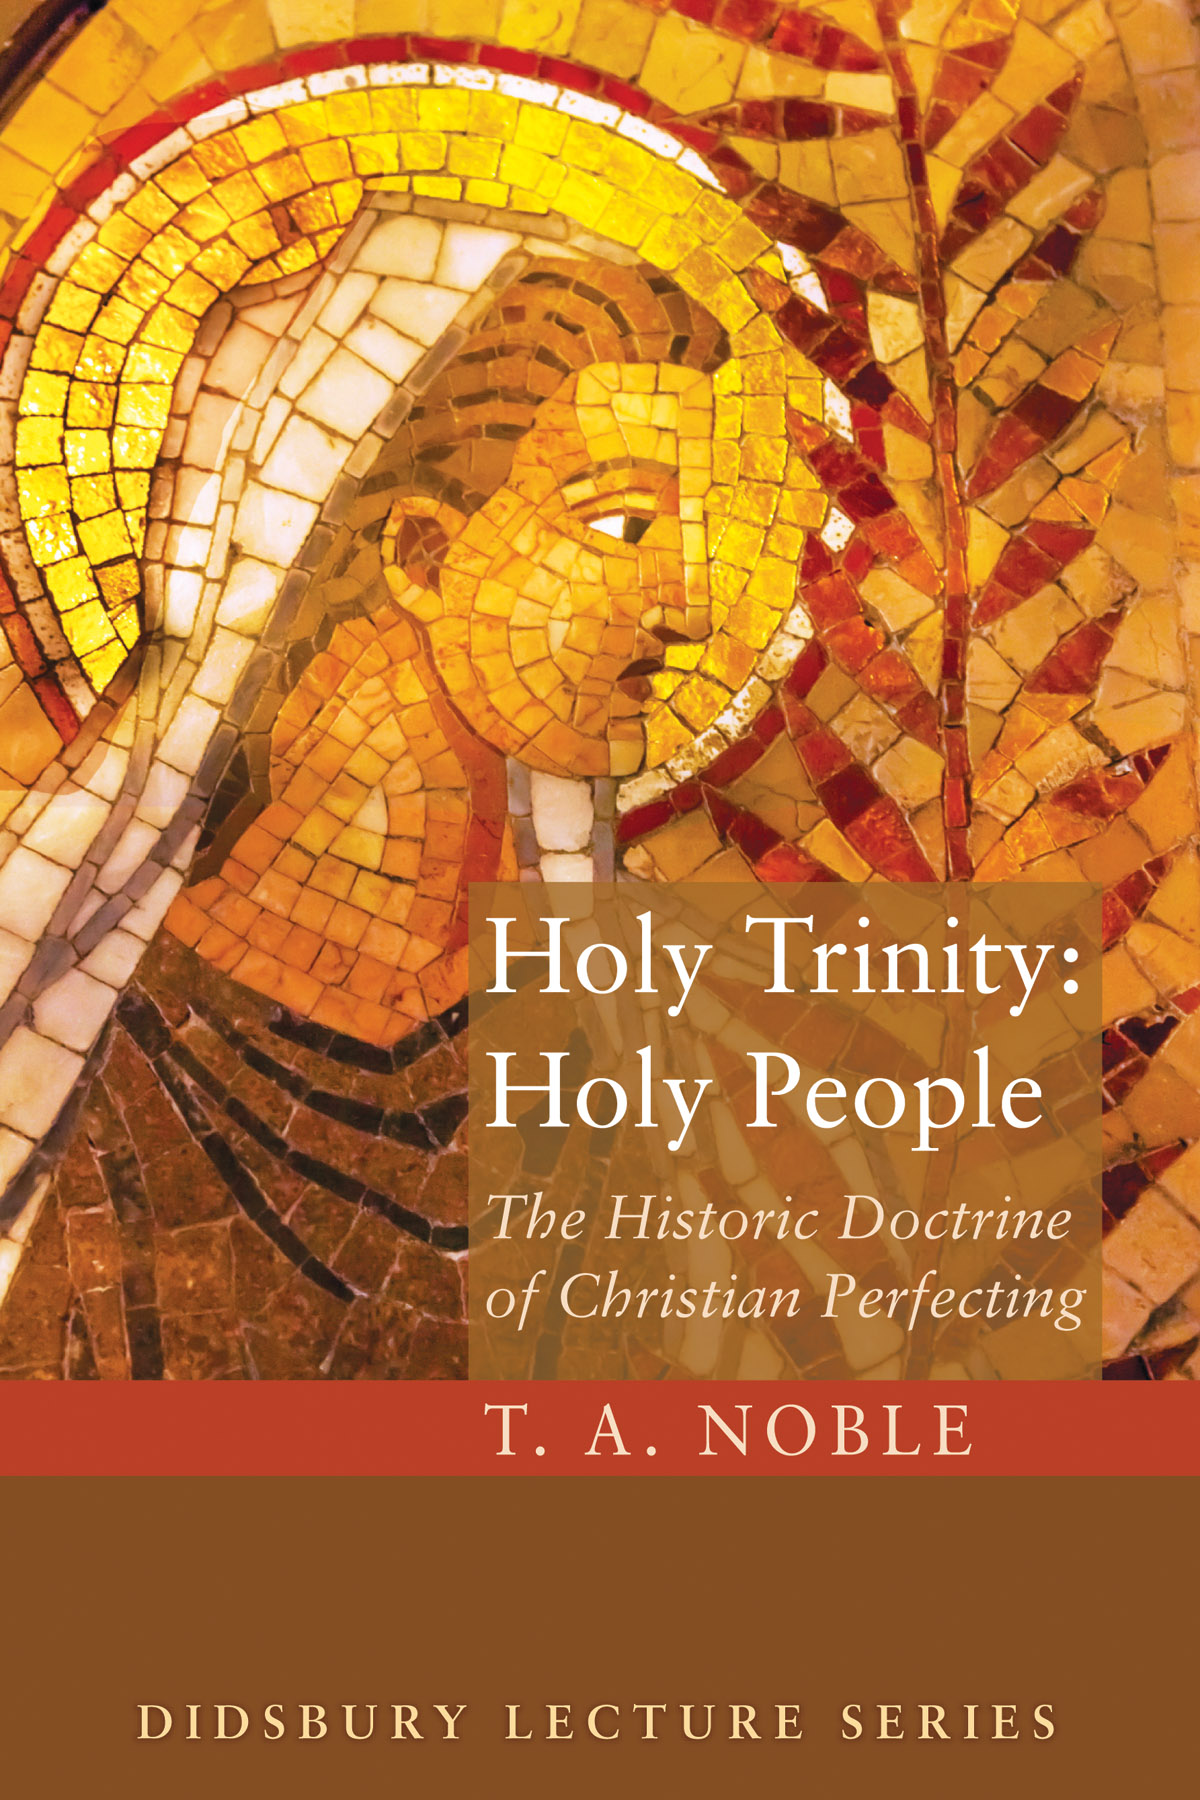 Holy Trinity - Holy People: The Theology of Christian Perfecting